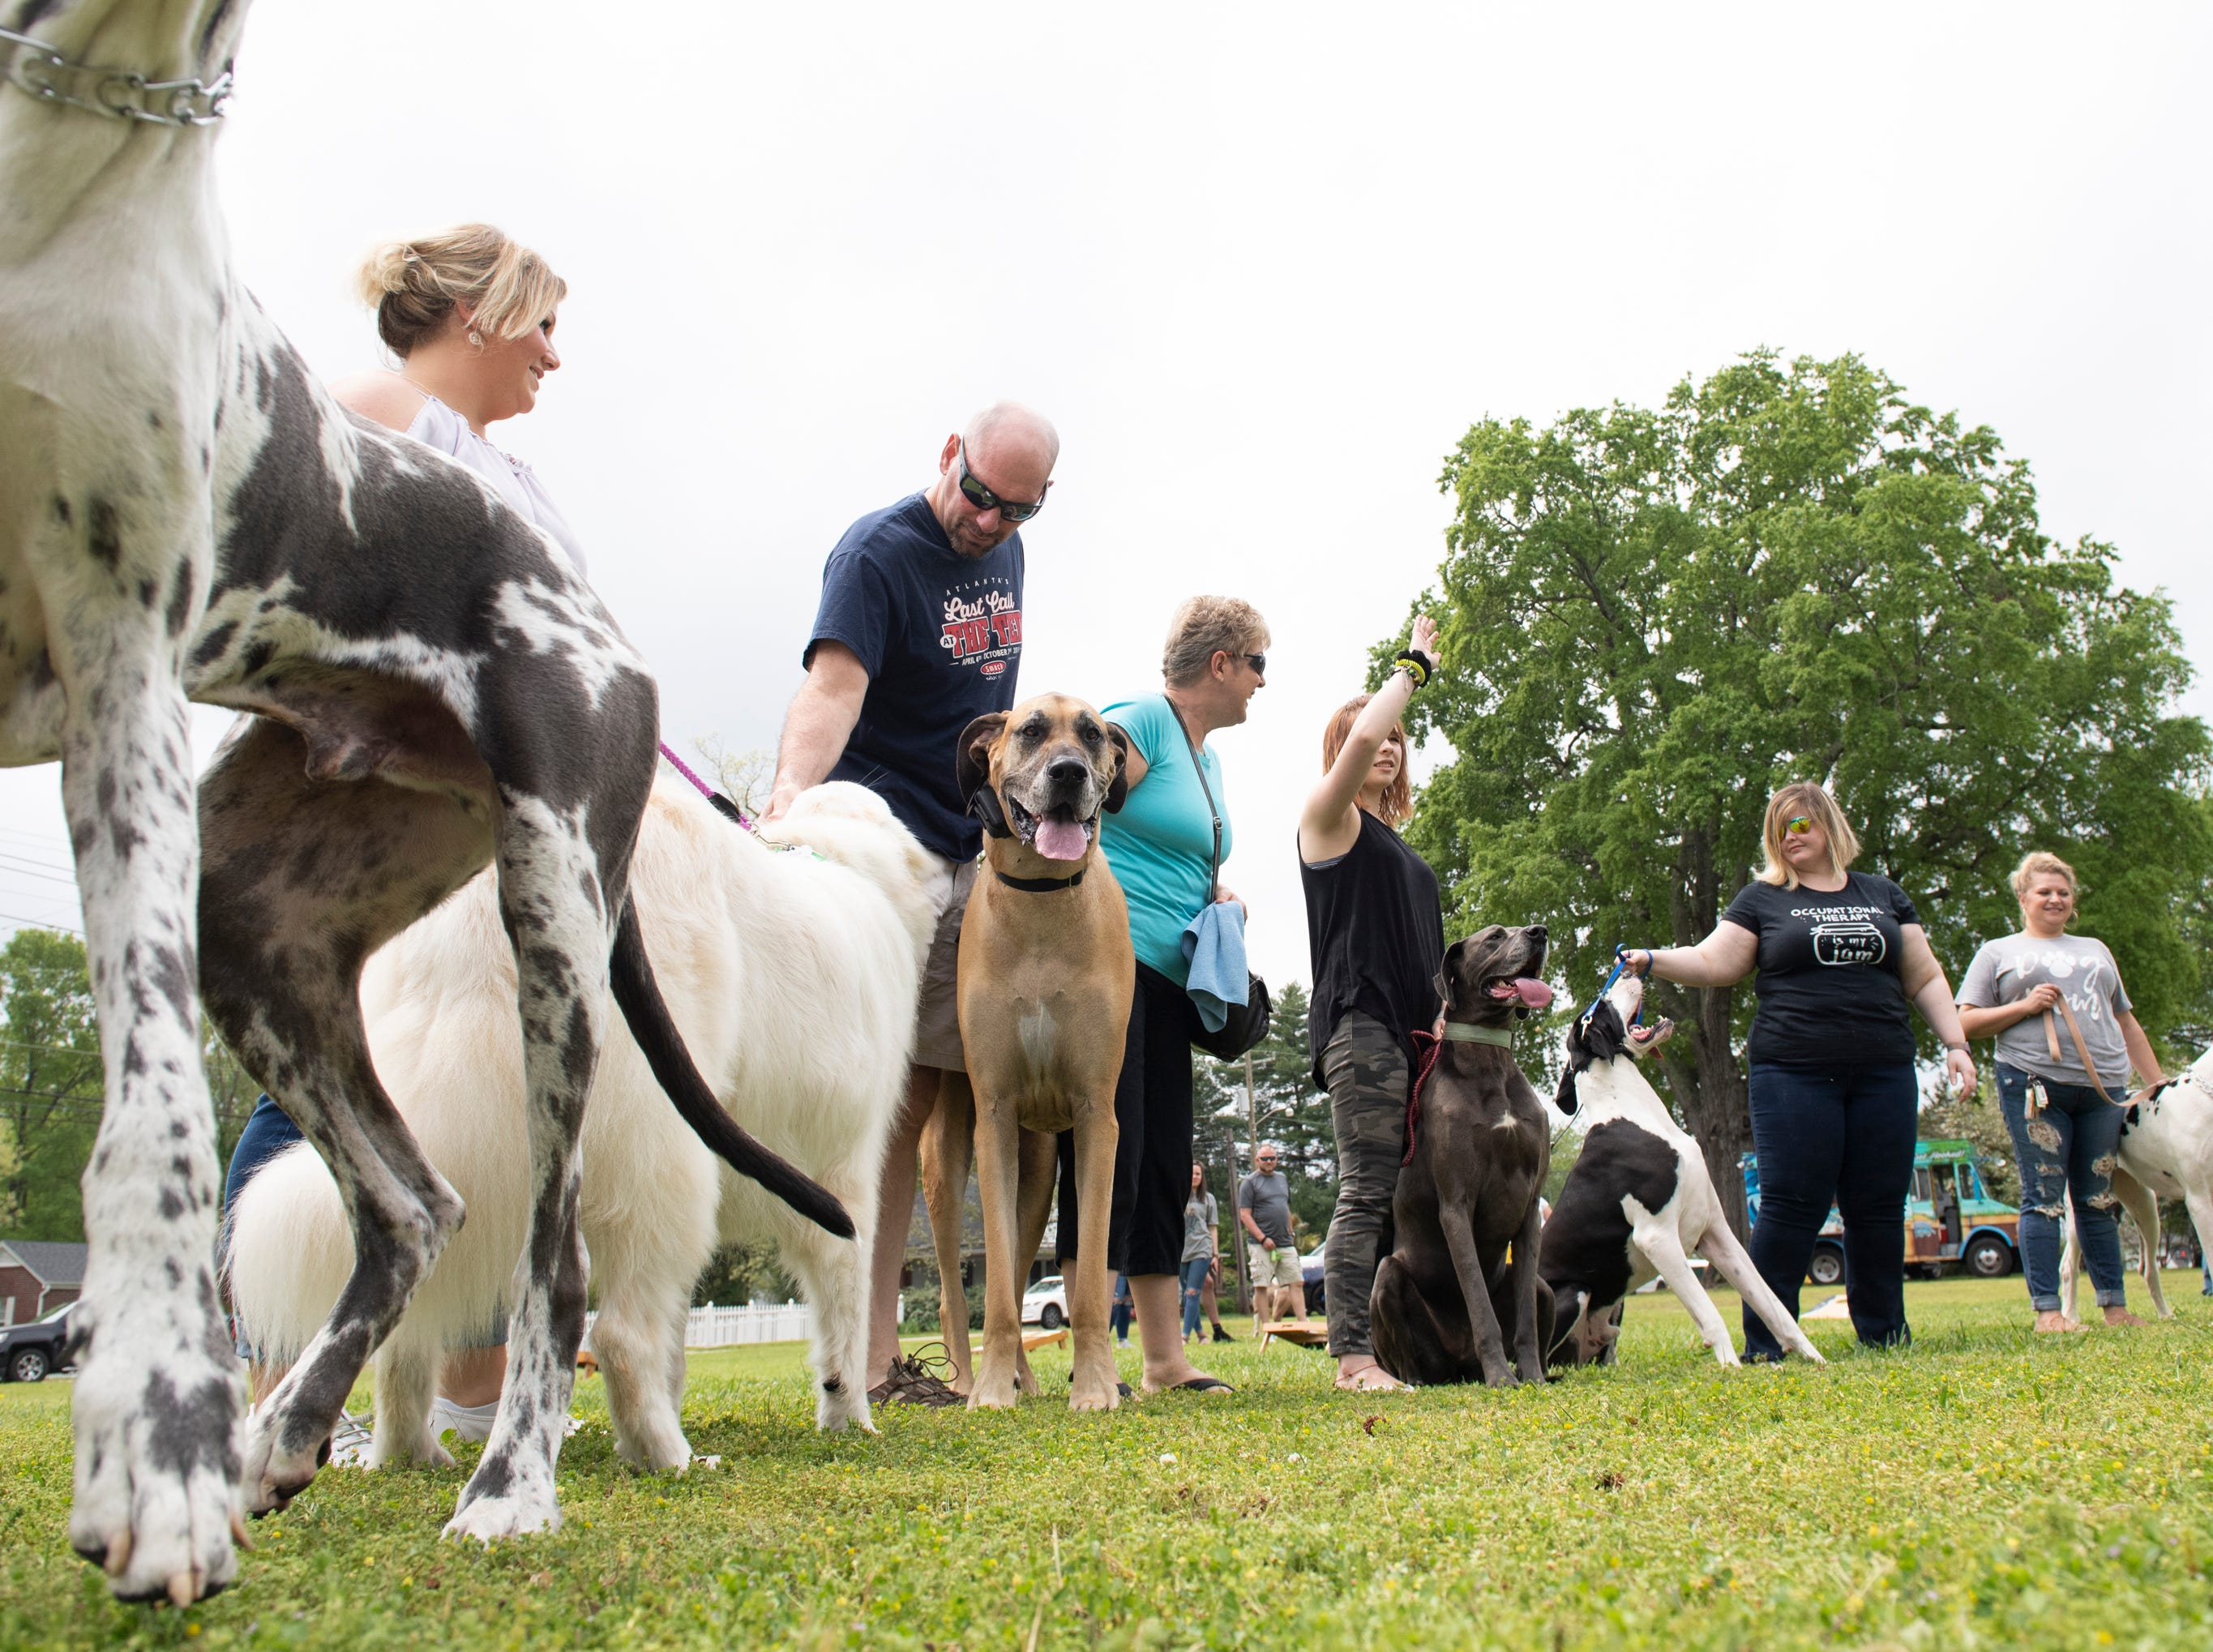 Dogs compete in the largest dog category during Paws for a Cause in Simpsonville City Park Saturday, April 13, 2019.